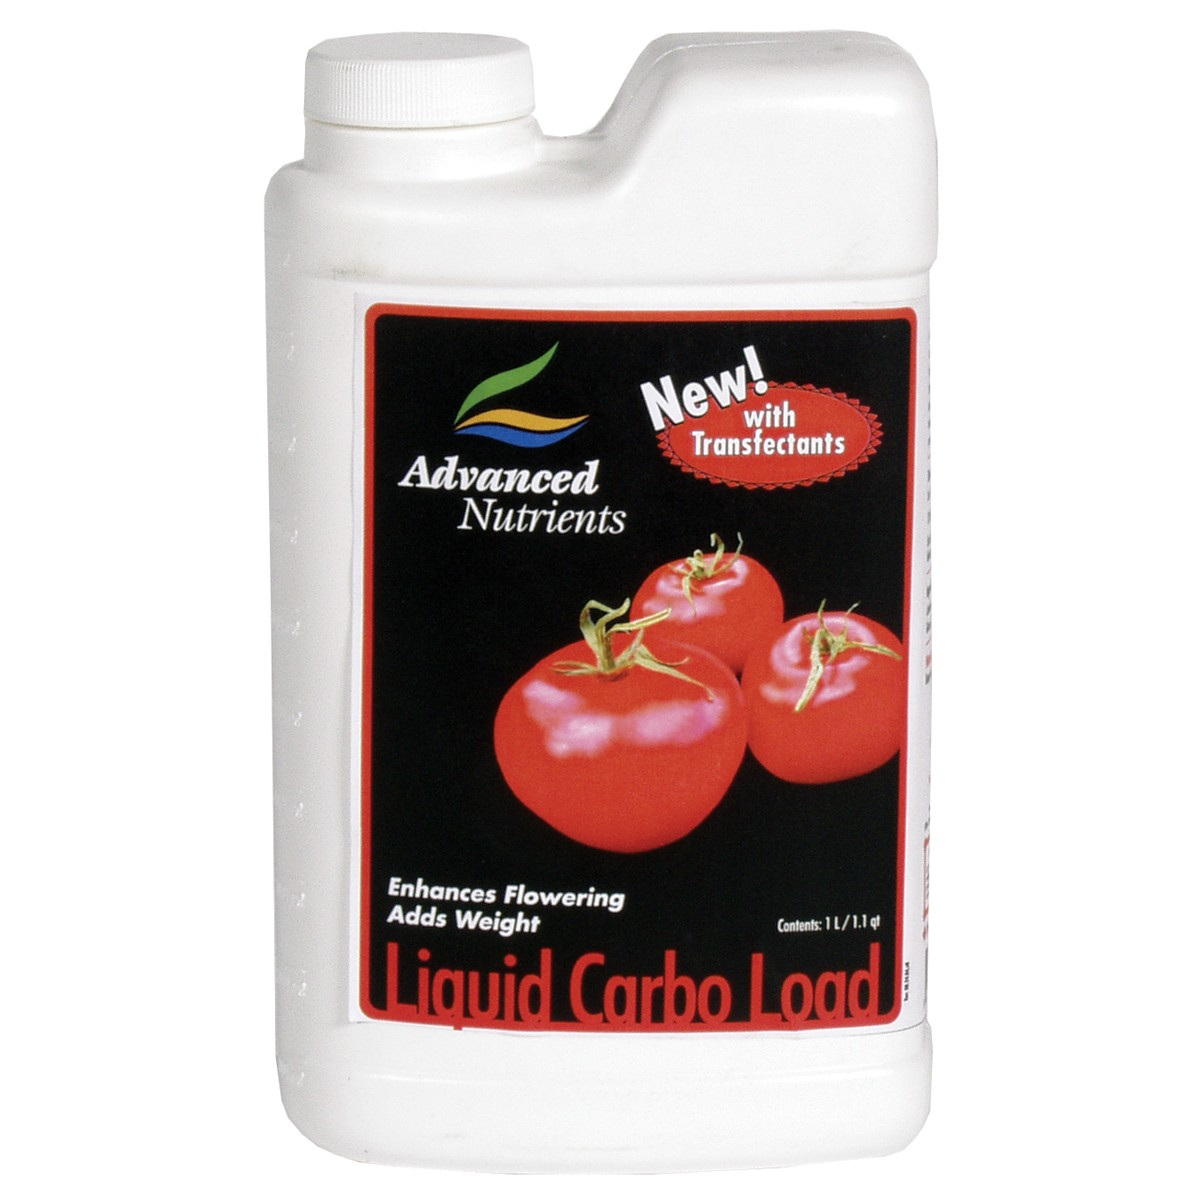 Watch How to Carbo Load video